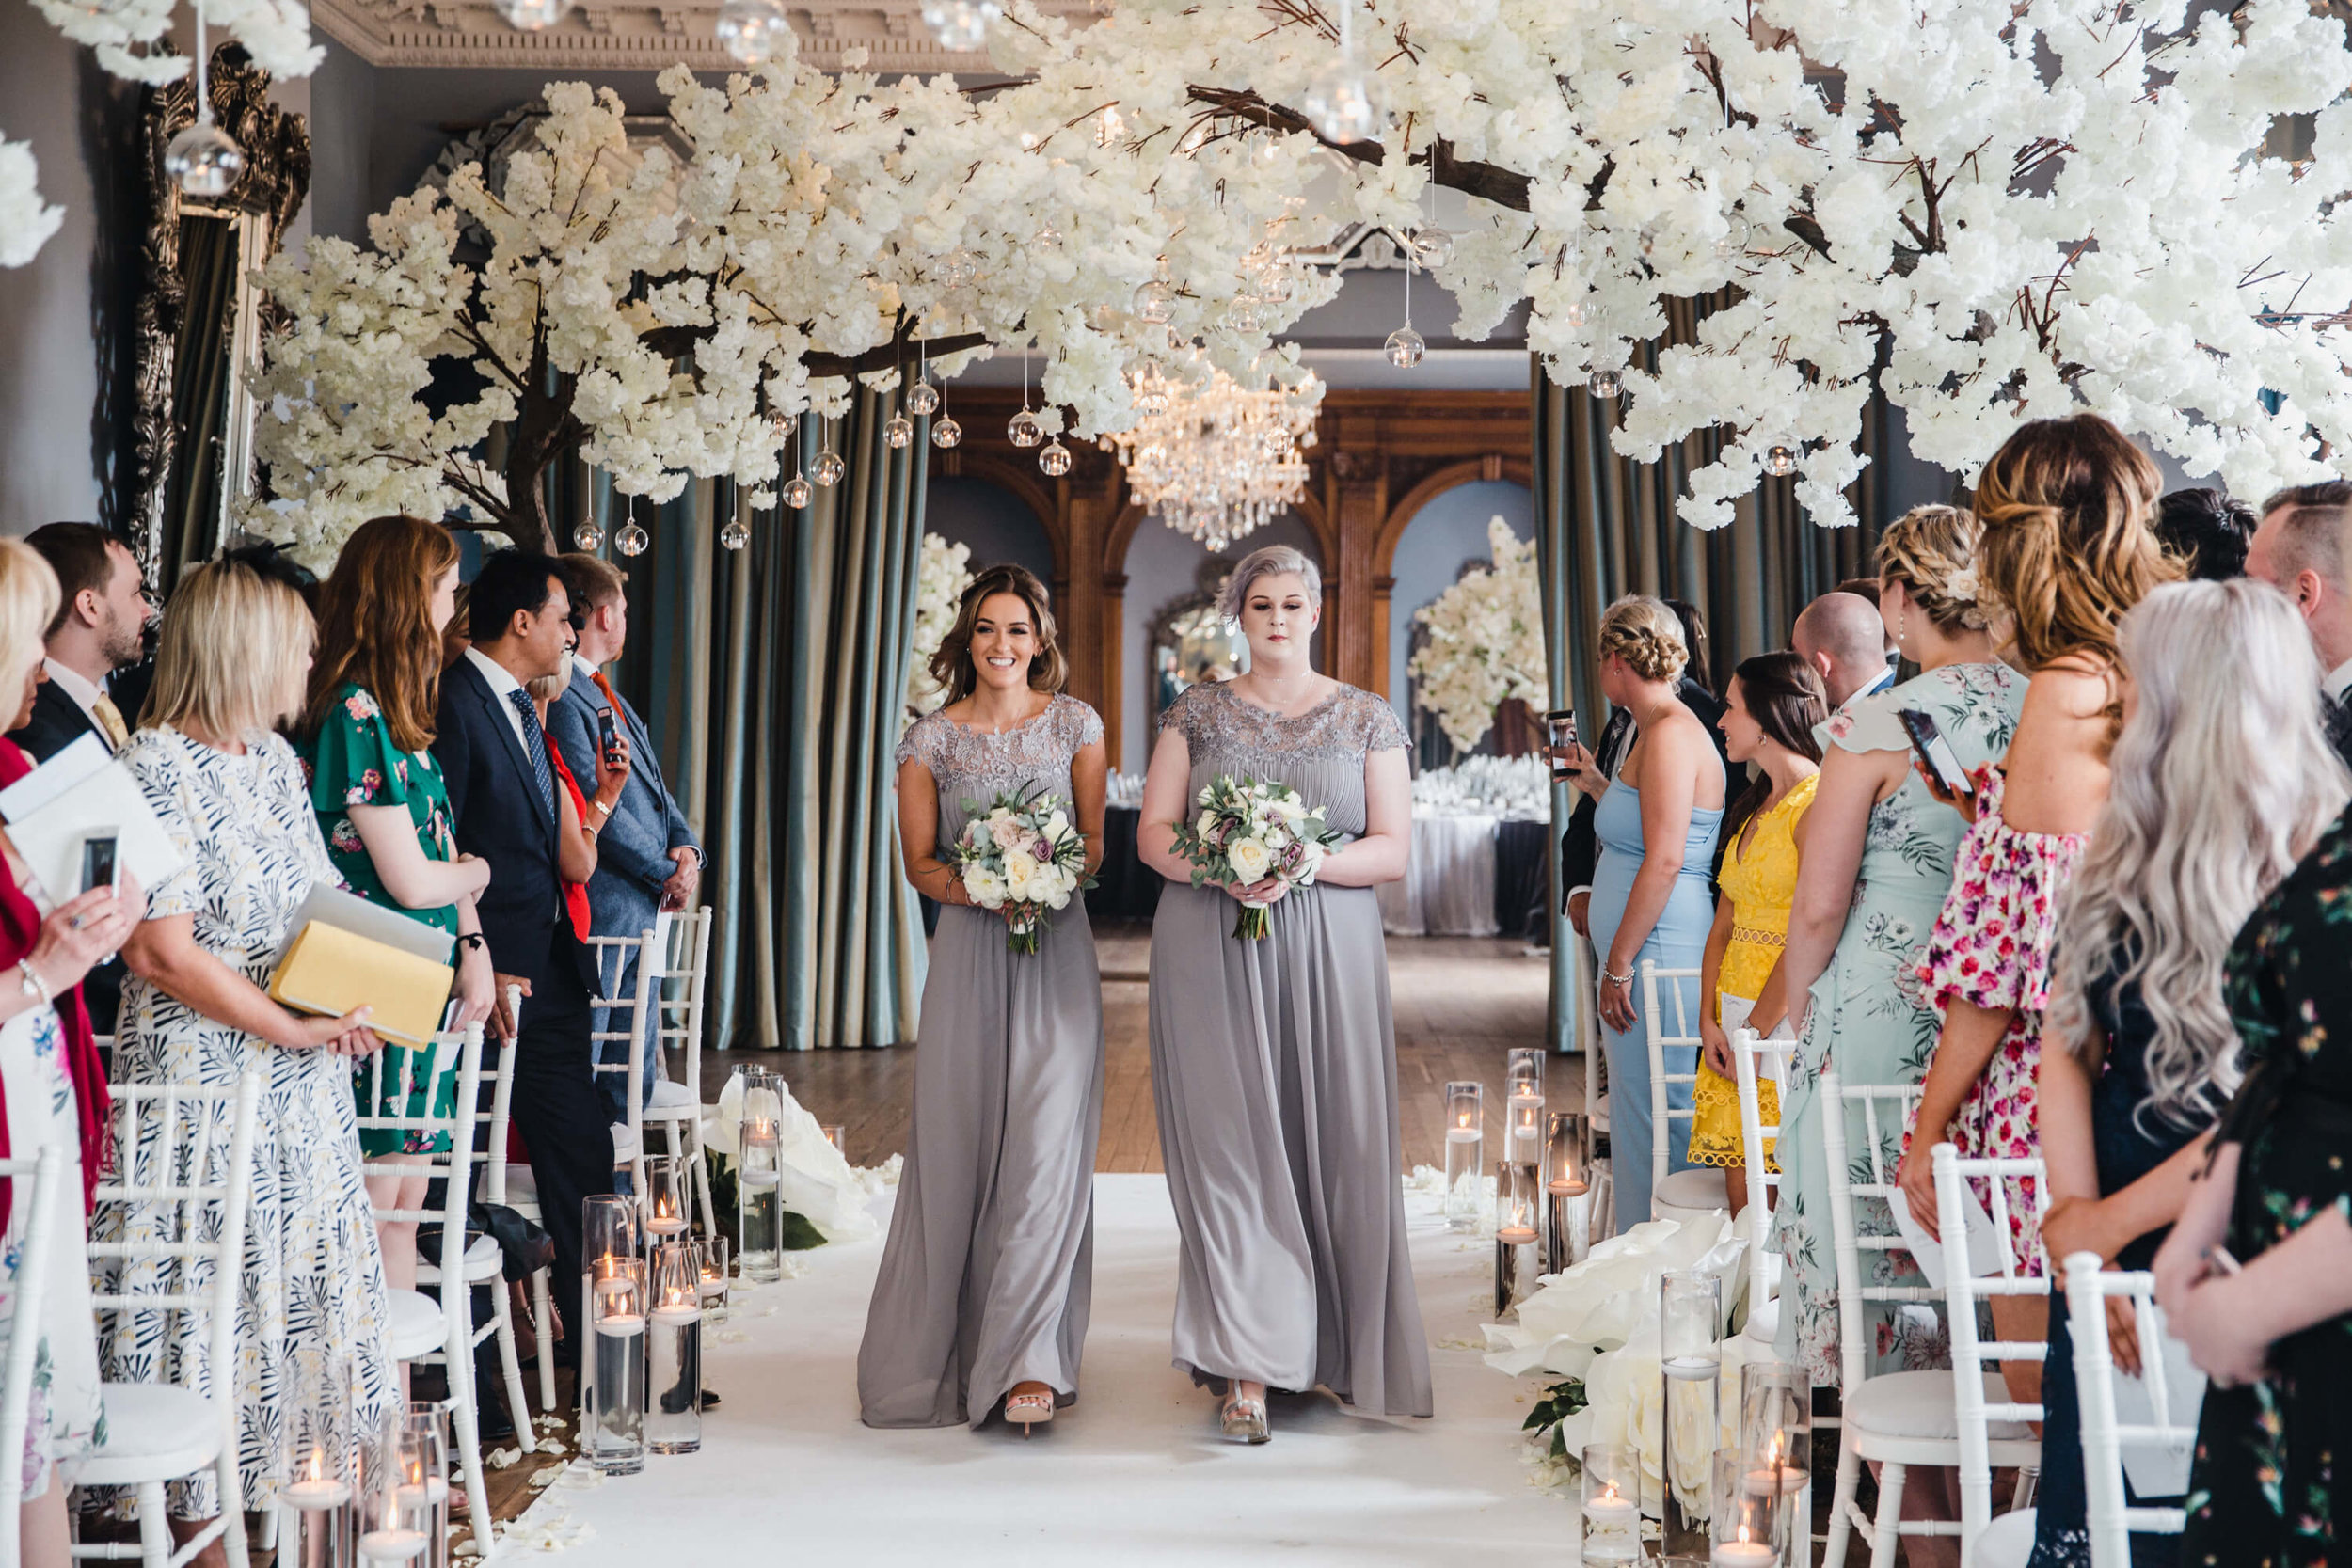 maid of honour walking down wedding aisle at beginning of ceremony